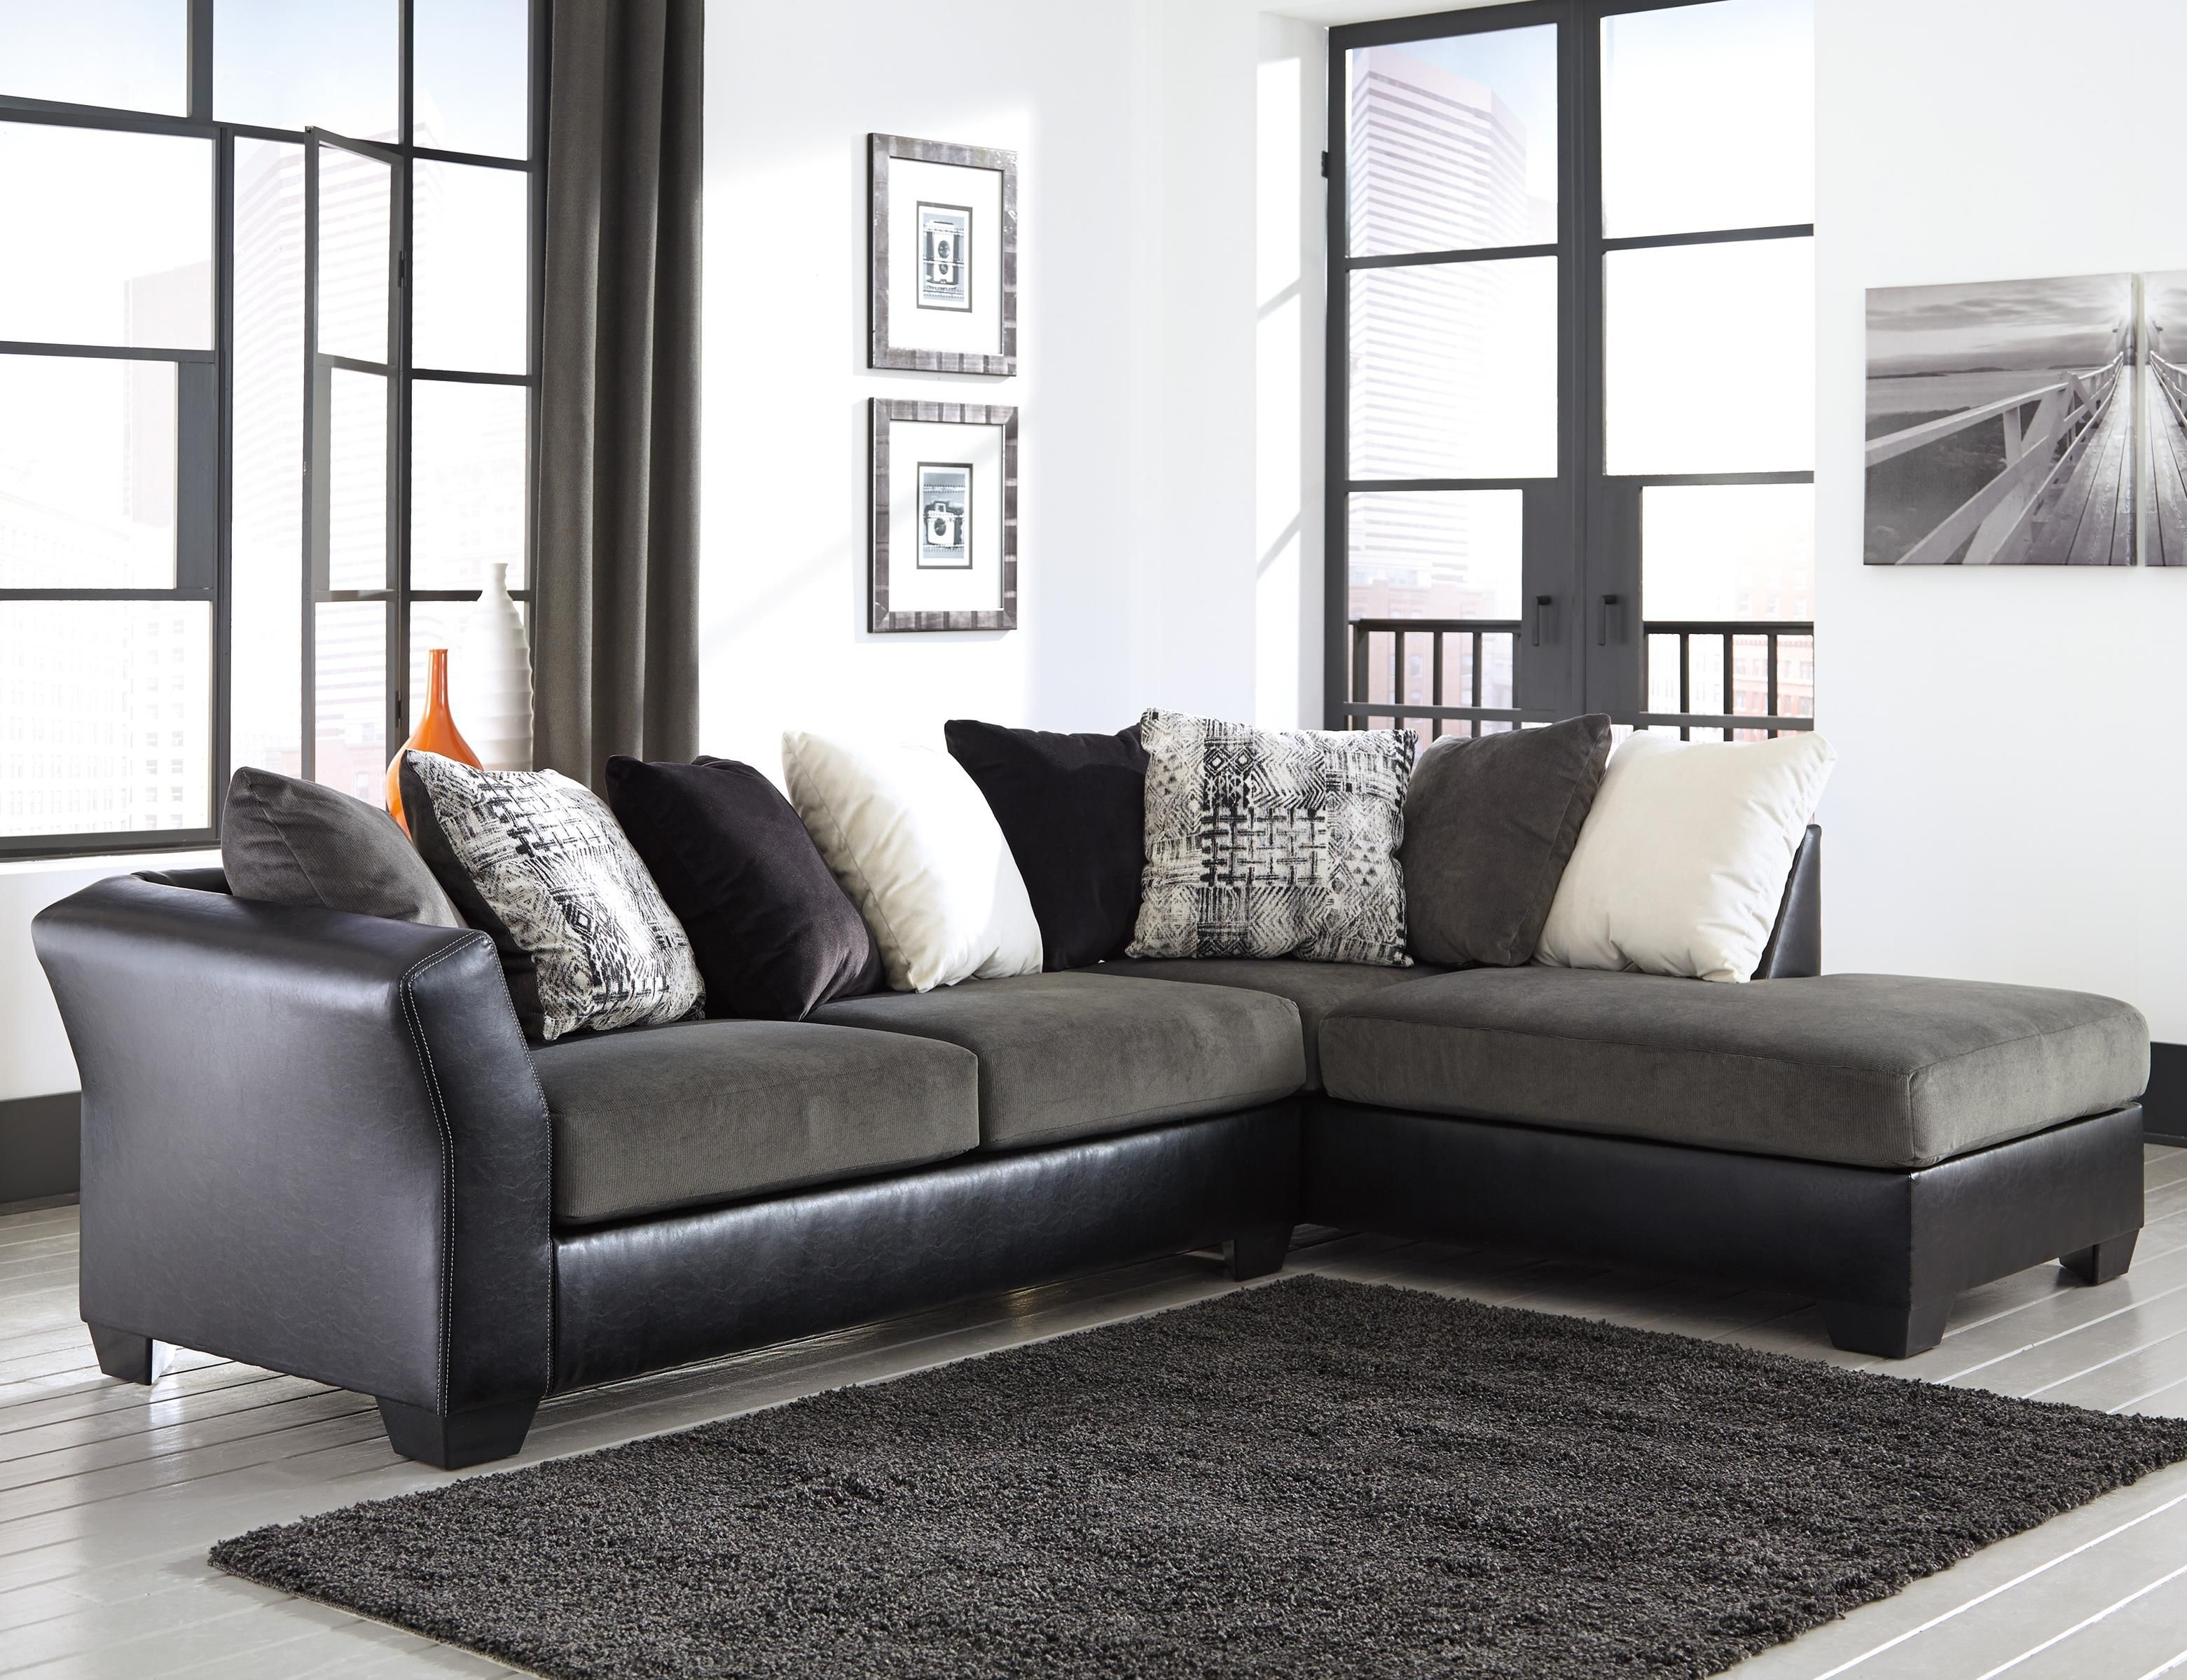 Armant 2 Piece Sectional With Right Chaisesignature Design In Cohen Down 2 Piece Sectionals (View 8 of 25)